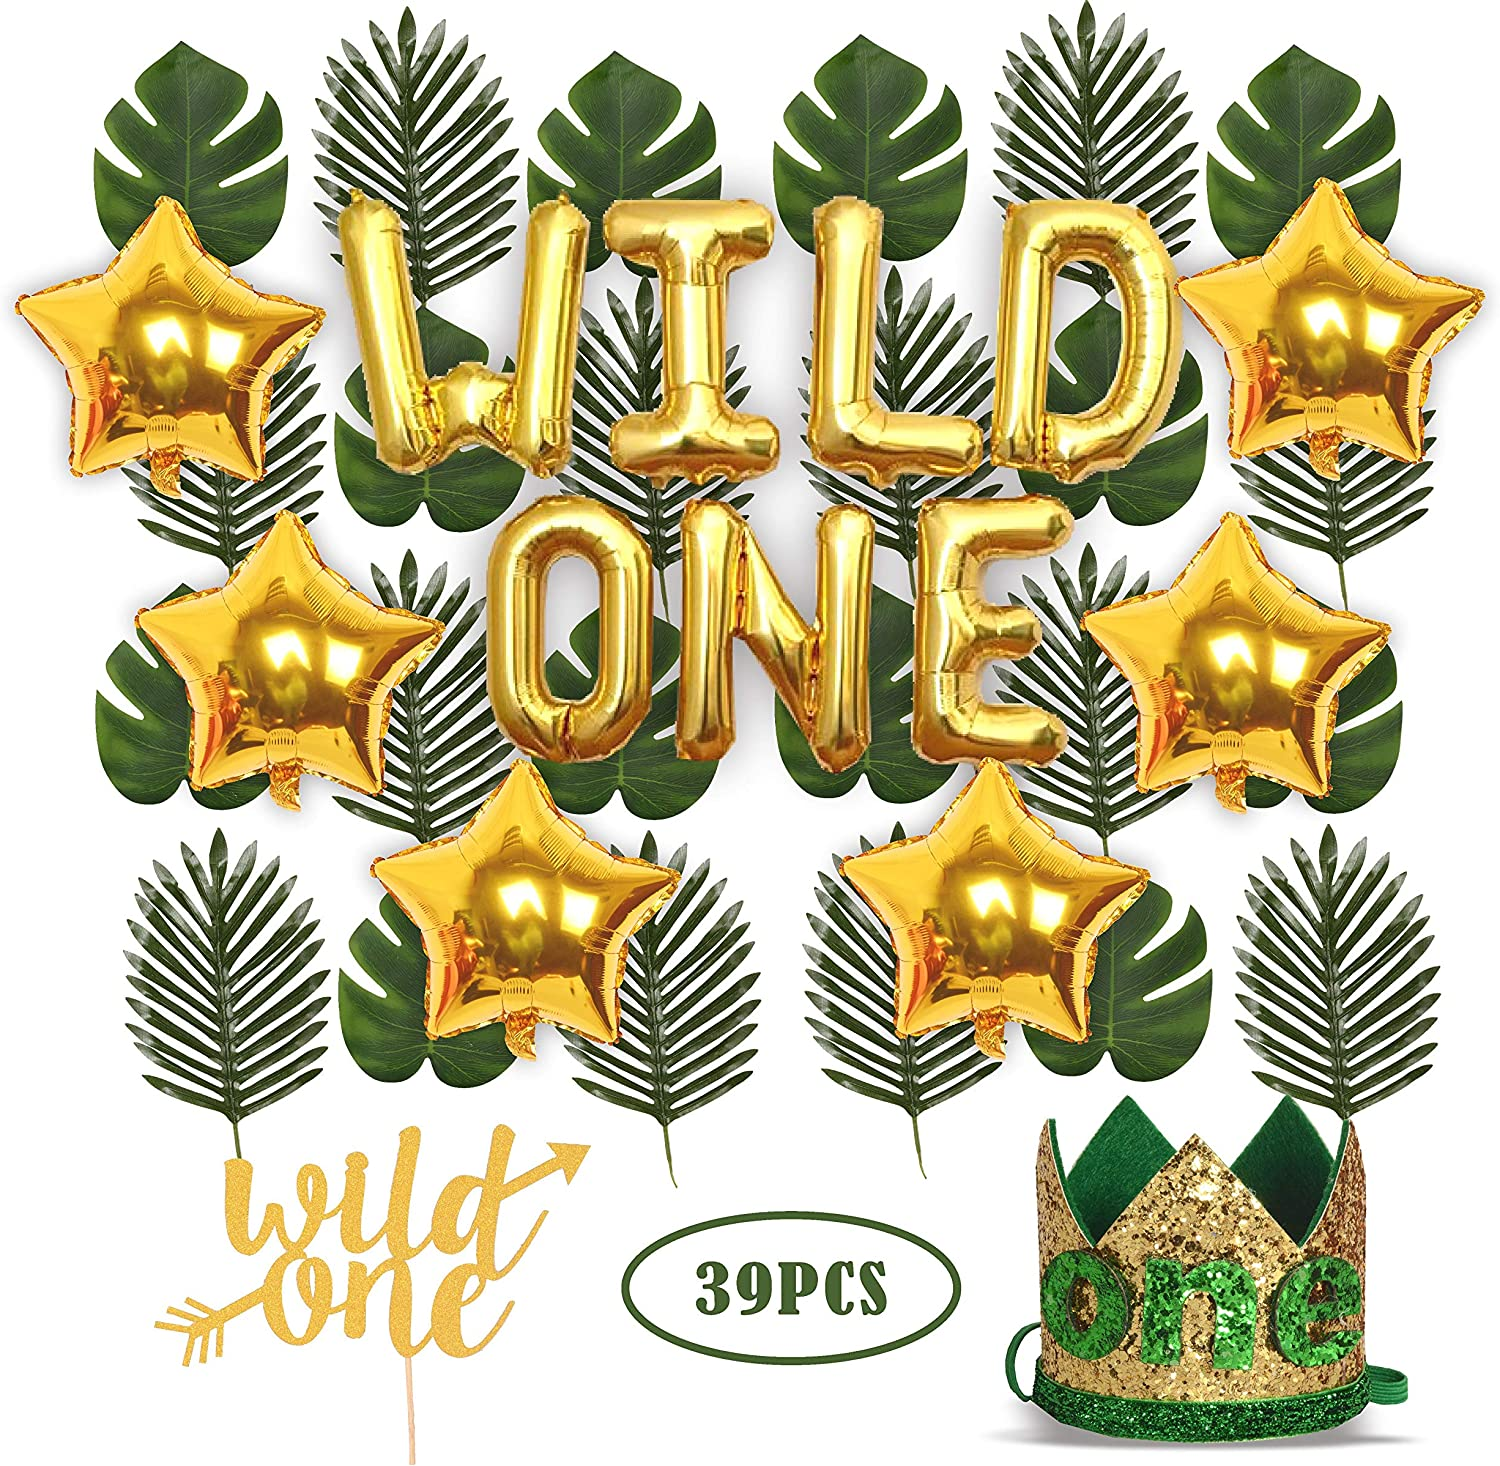 "Wild One Birthday Decorations | 1st Baby Girl/Boy Birthday Party Hat Green Crown with Green Hair Band | 24 PCS Artificial Palm Leaves | 16"" 'Wild One' Balloon 